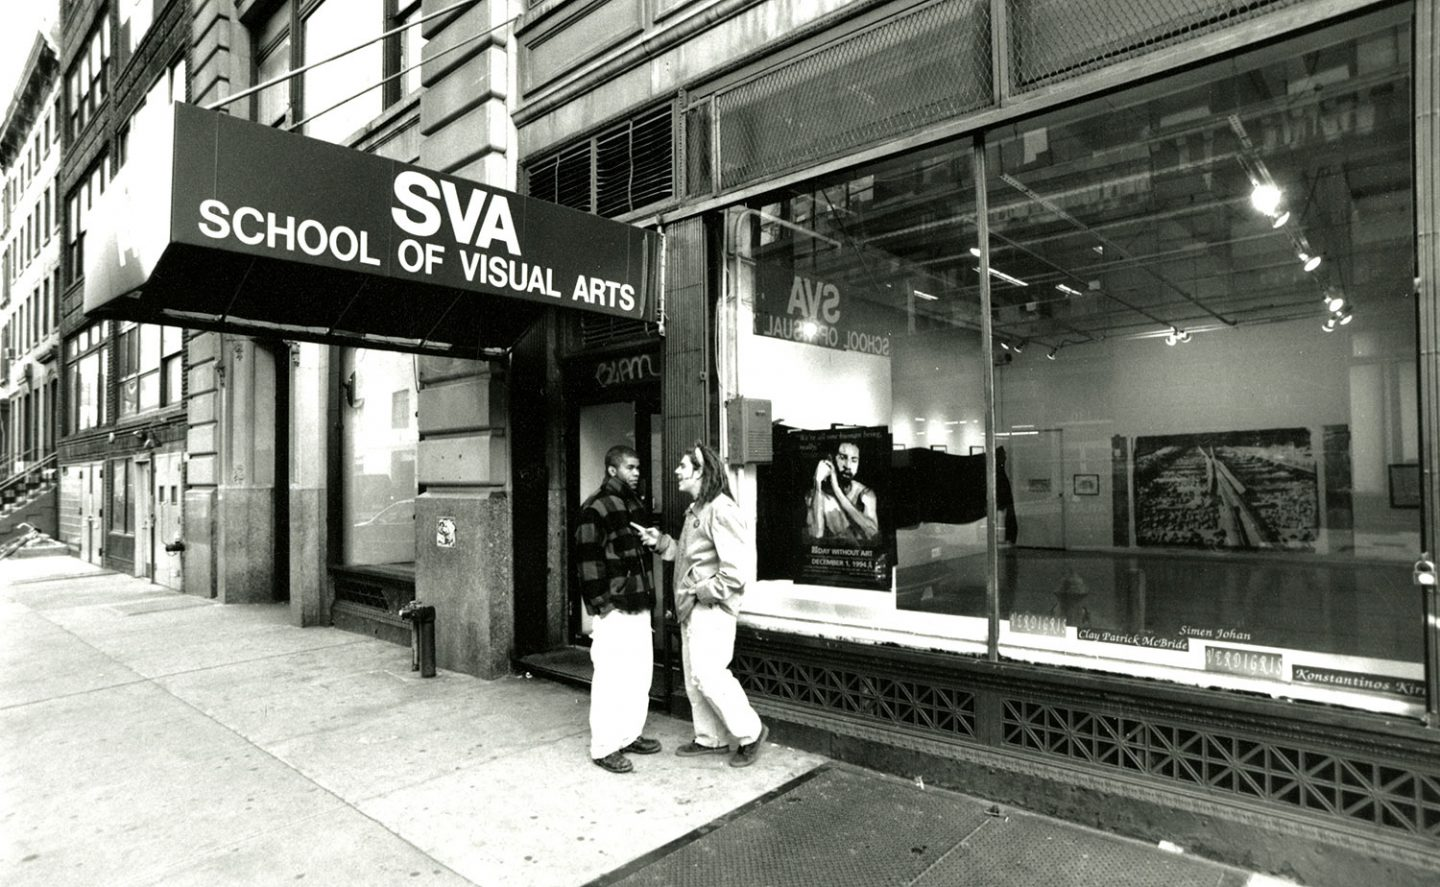 School of Visual Arts, 1994.